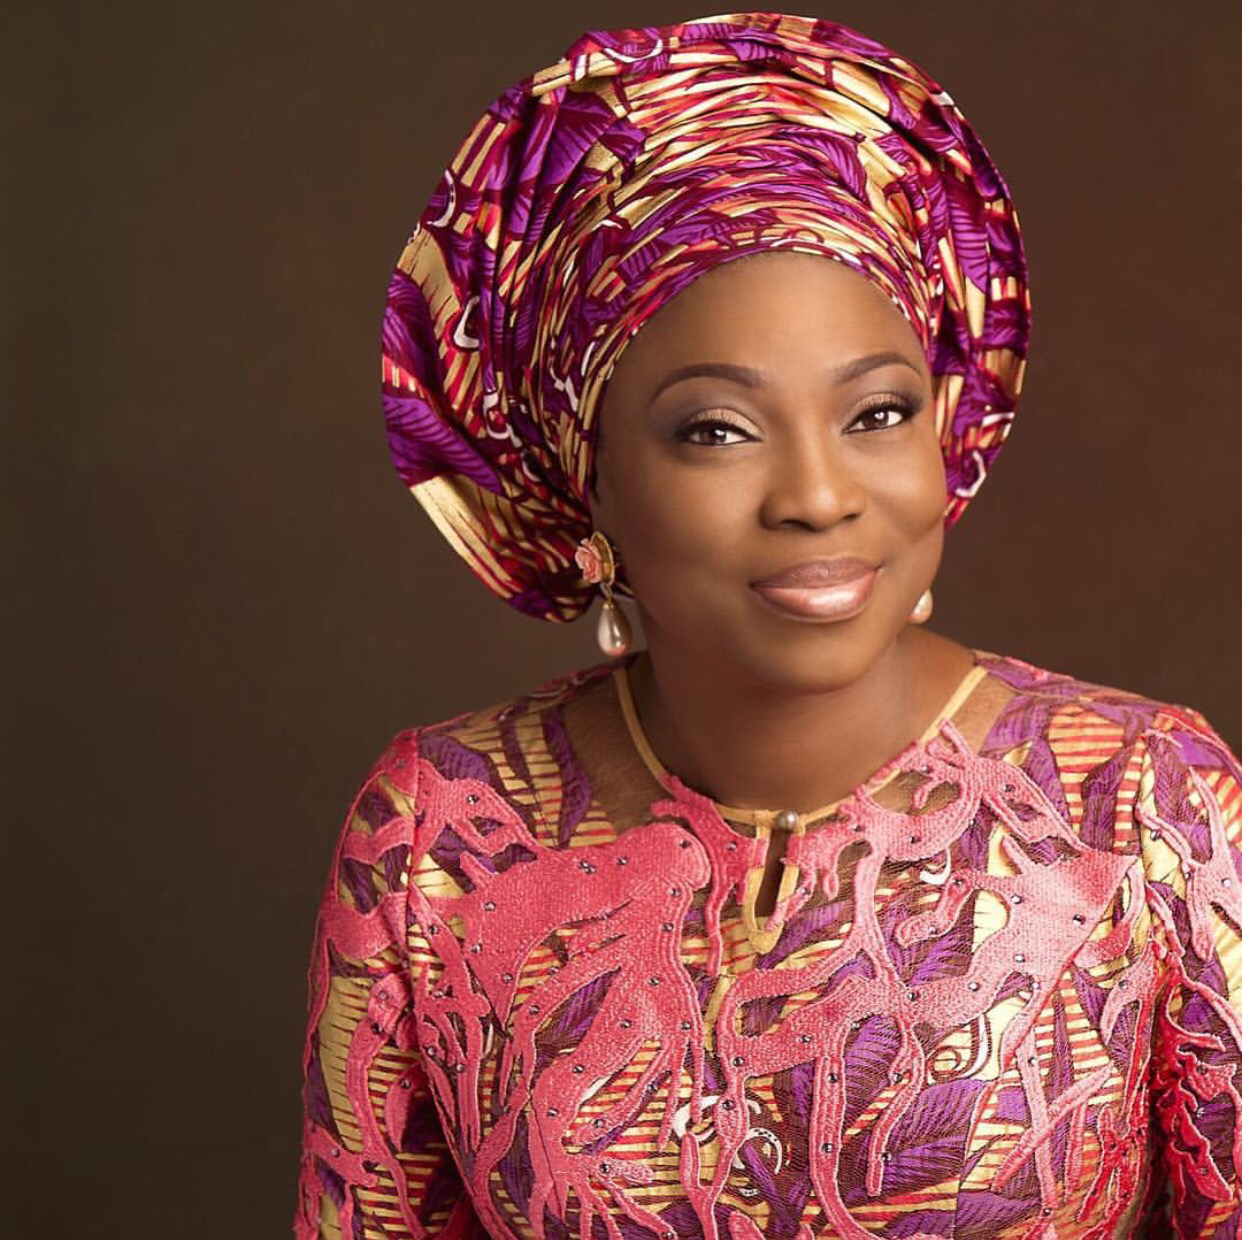 FIRST LADY OF LAGOS STATE, MRS BOLANLE AMBODE, CALLS FOR ERADICATION OF FEMALE GENITAL MUTILATION